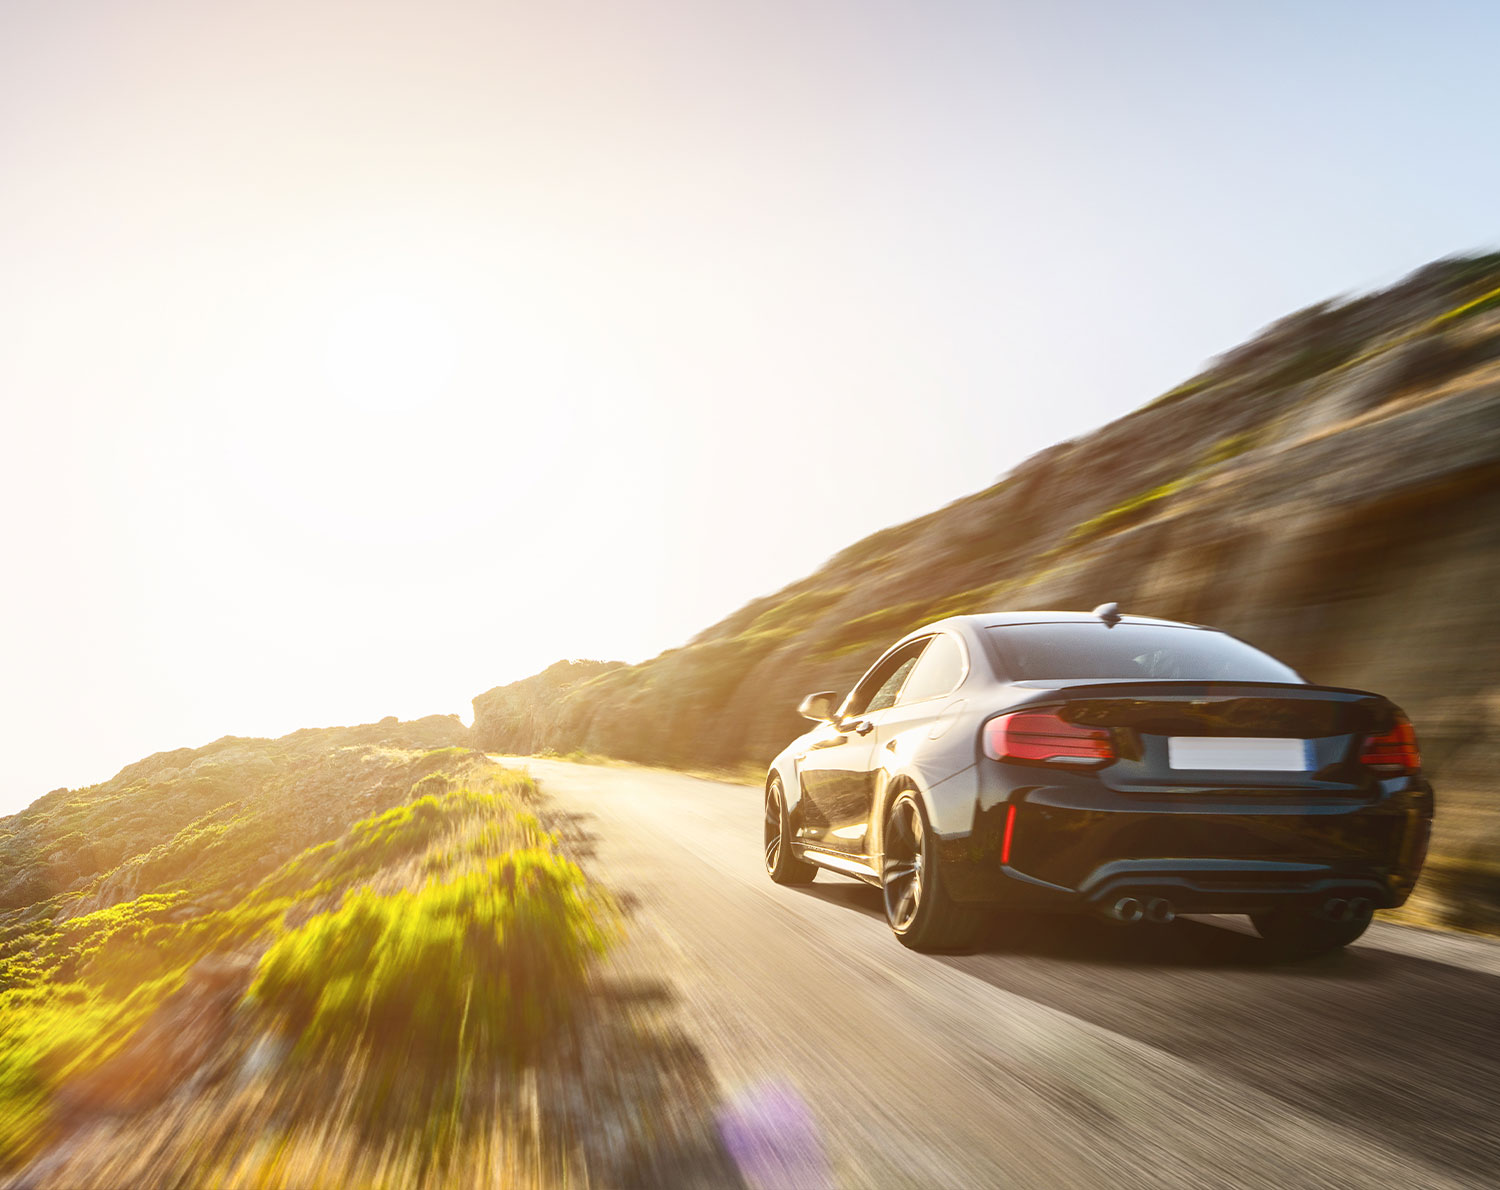 Black car driving on a mountain road – how RationalFX can help. International money transfers with competitive exchange rates and low to no transfer fees and expert guidance.